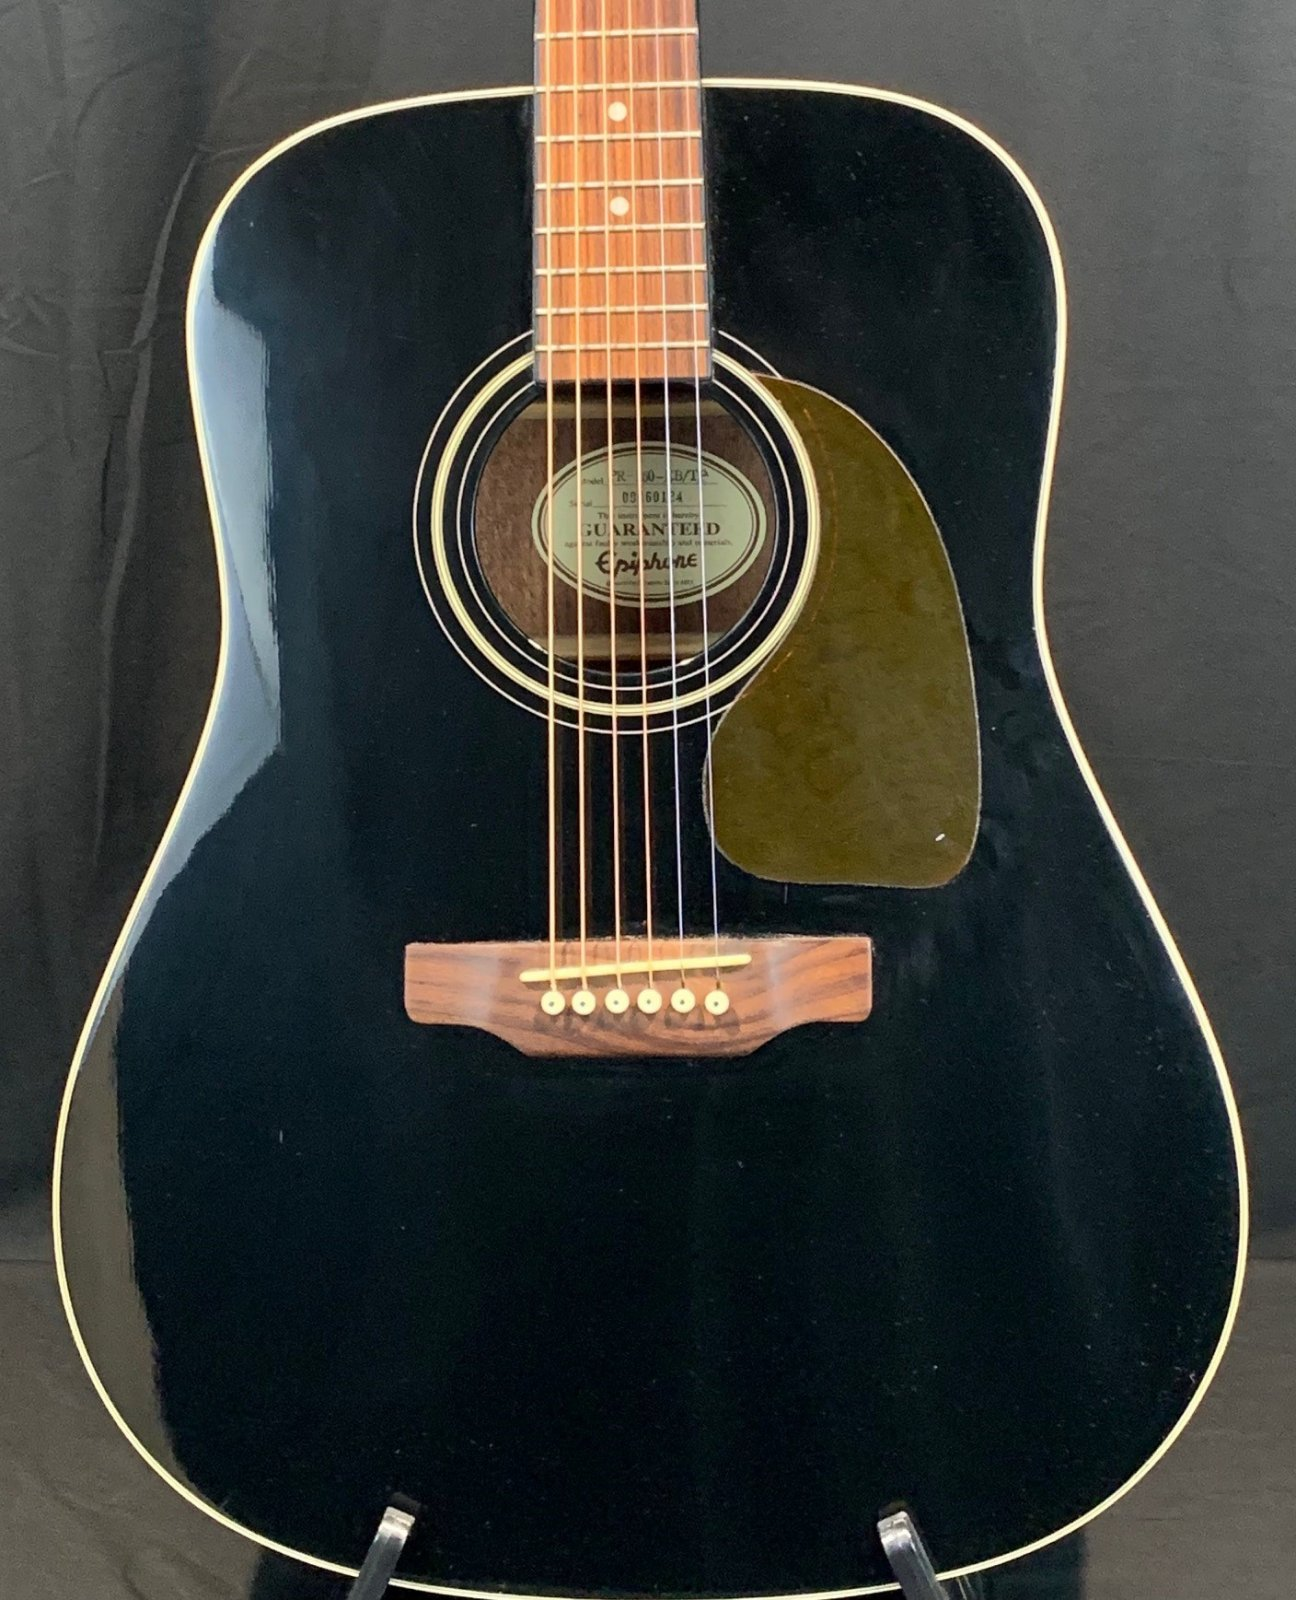 Used Epiphone PR-160-EB/TP with a chippy case